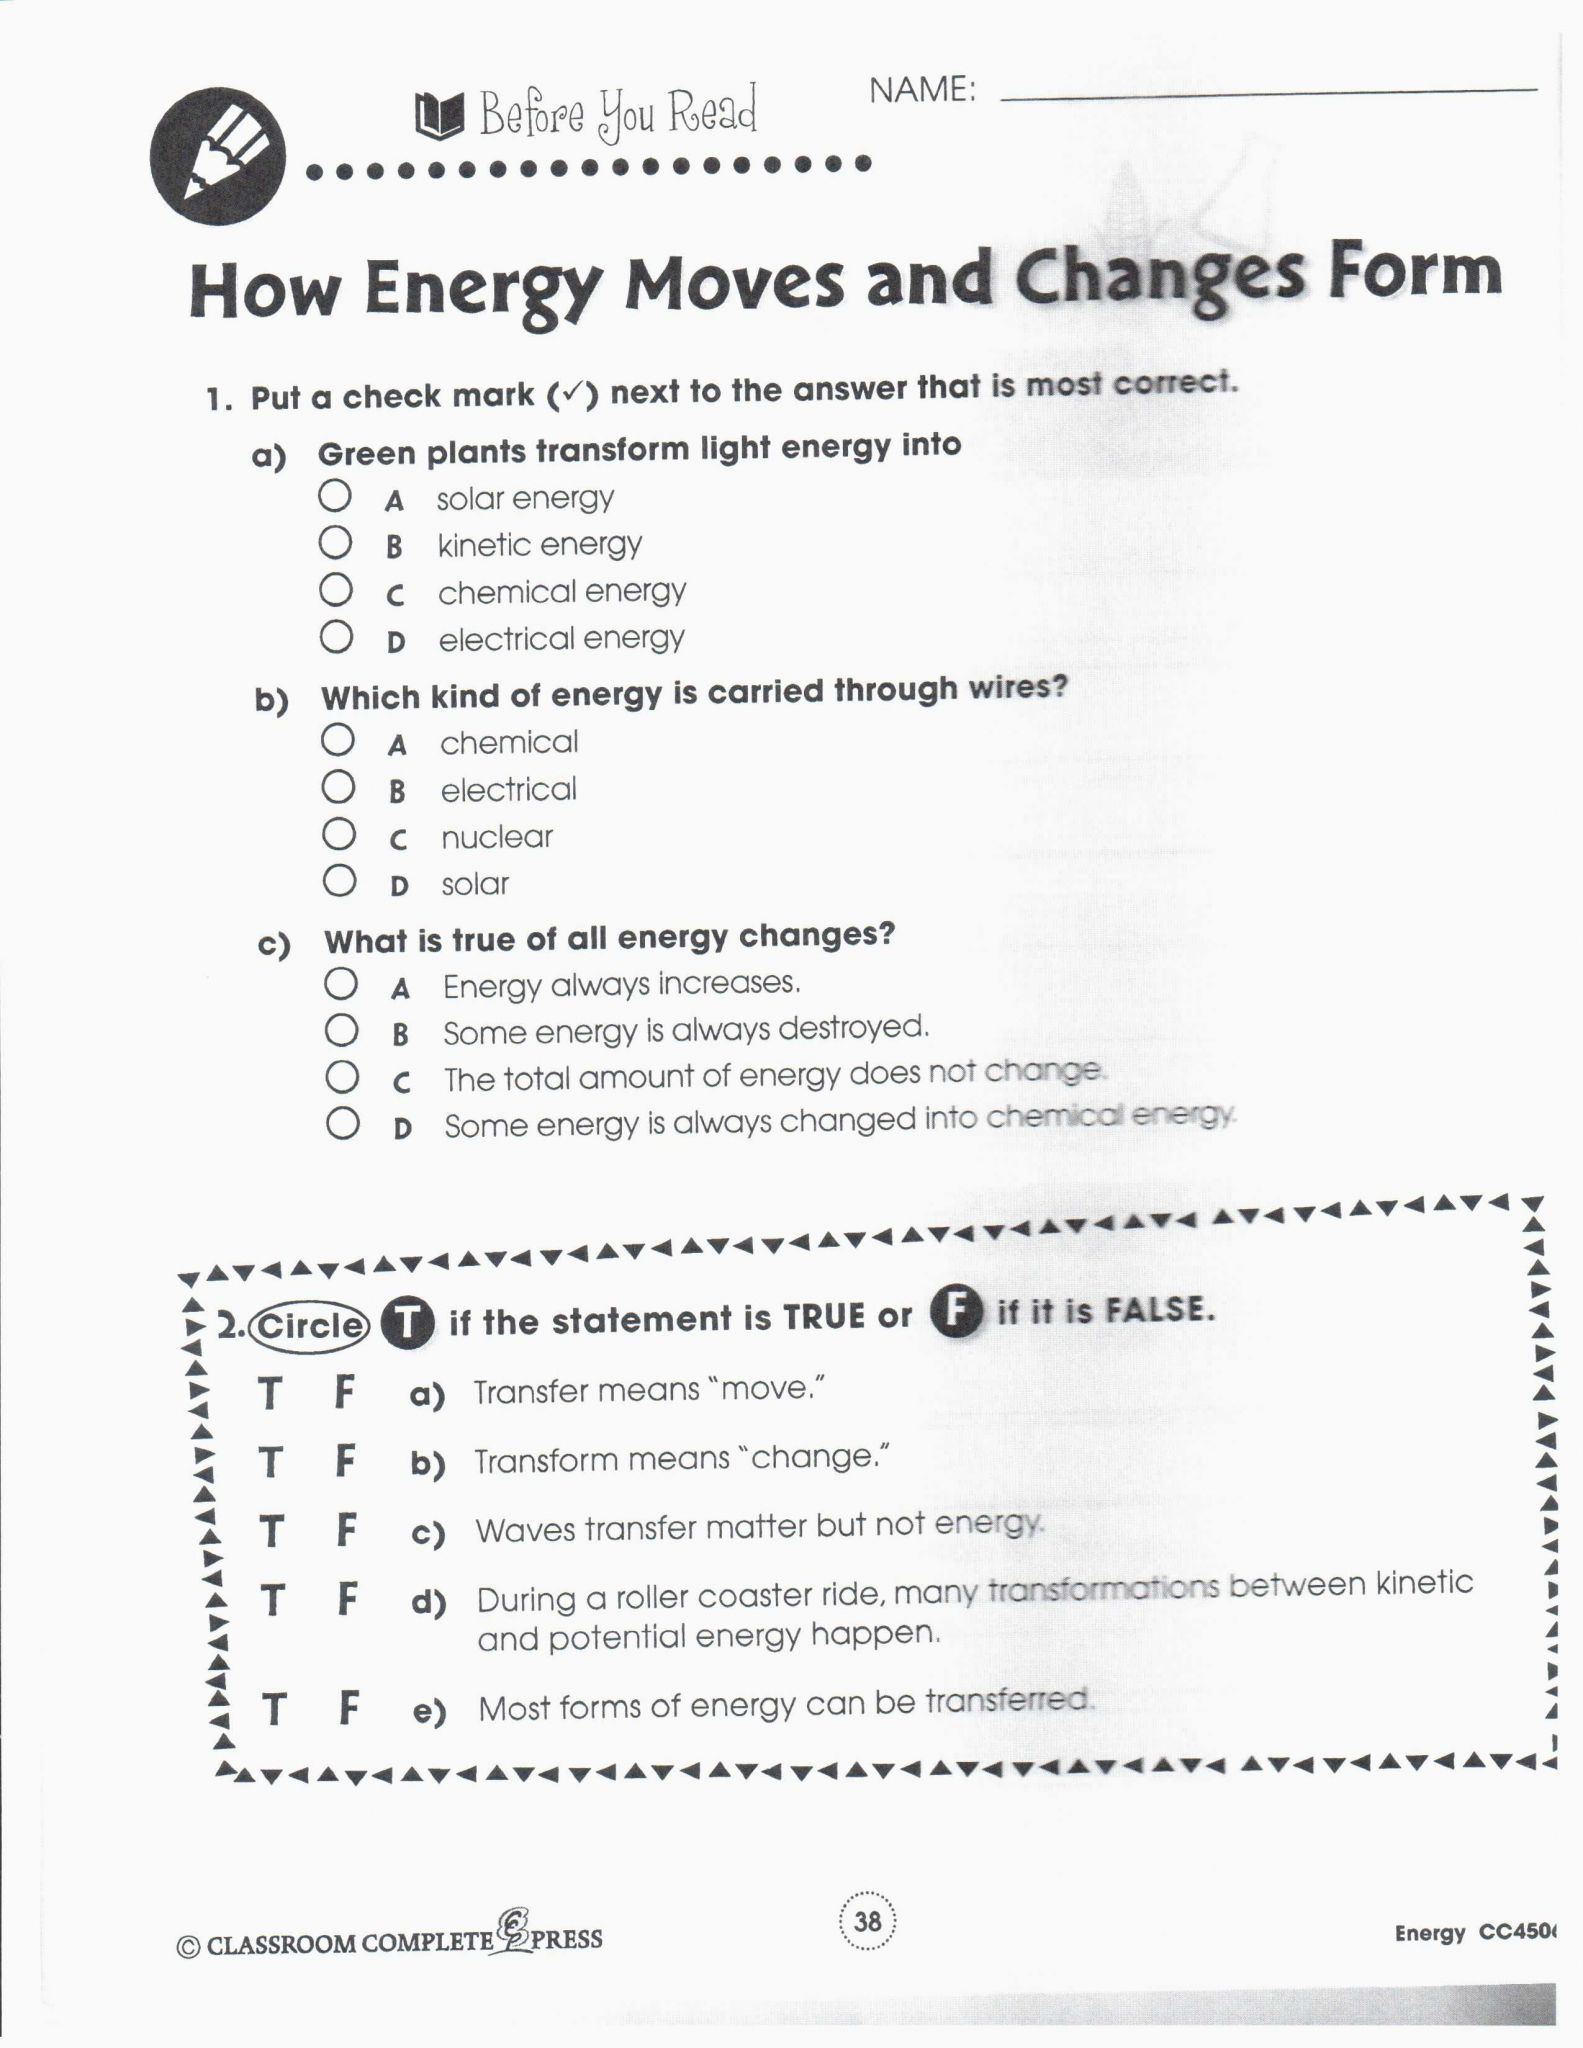 Transformation Practice Worksheet as Well as Scientific Method Practice Worksheet Answers Wp Landingpages